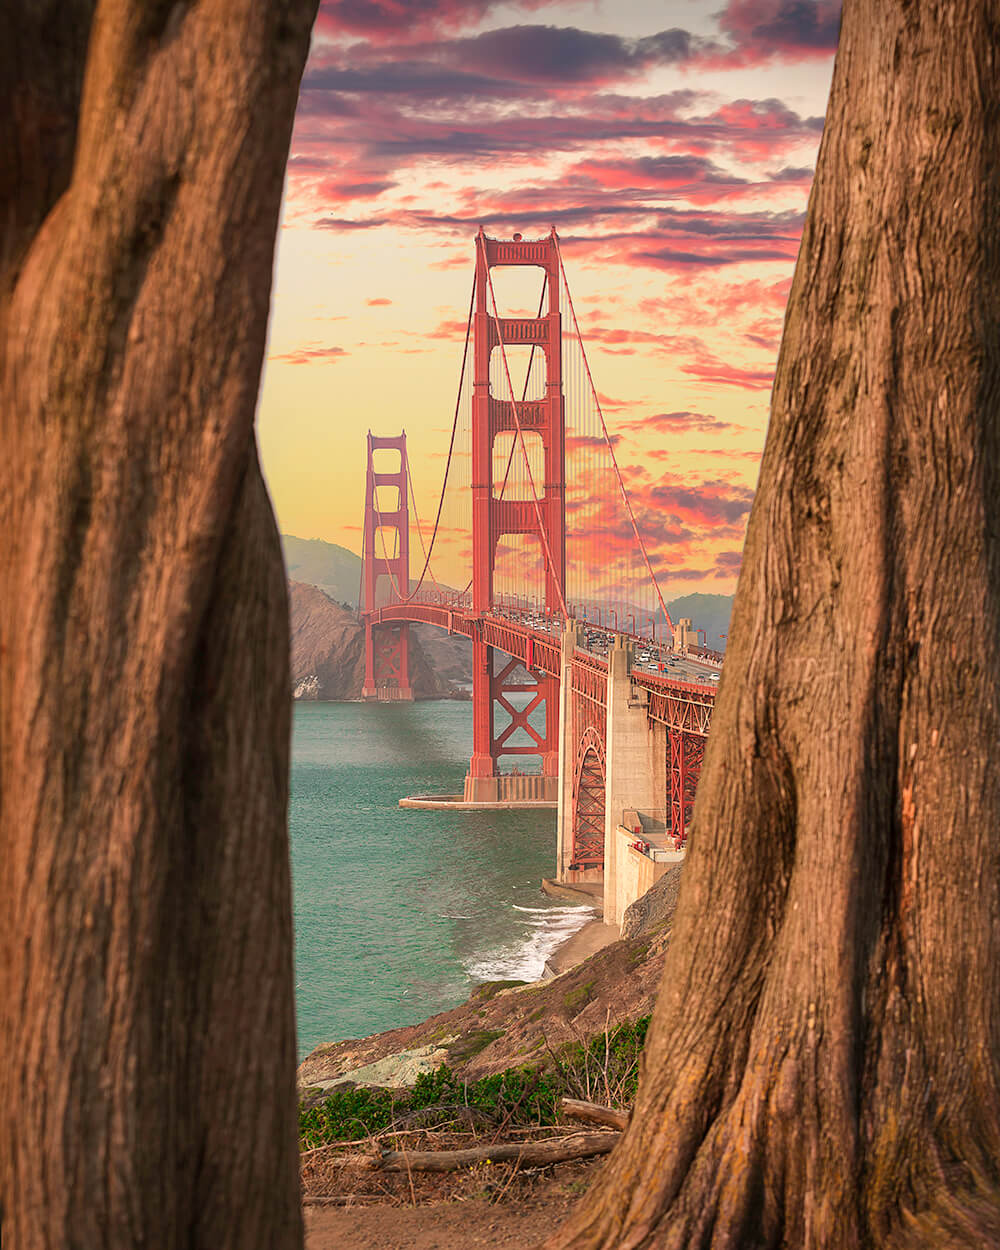 LAndscape image of Golden Gate bridge